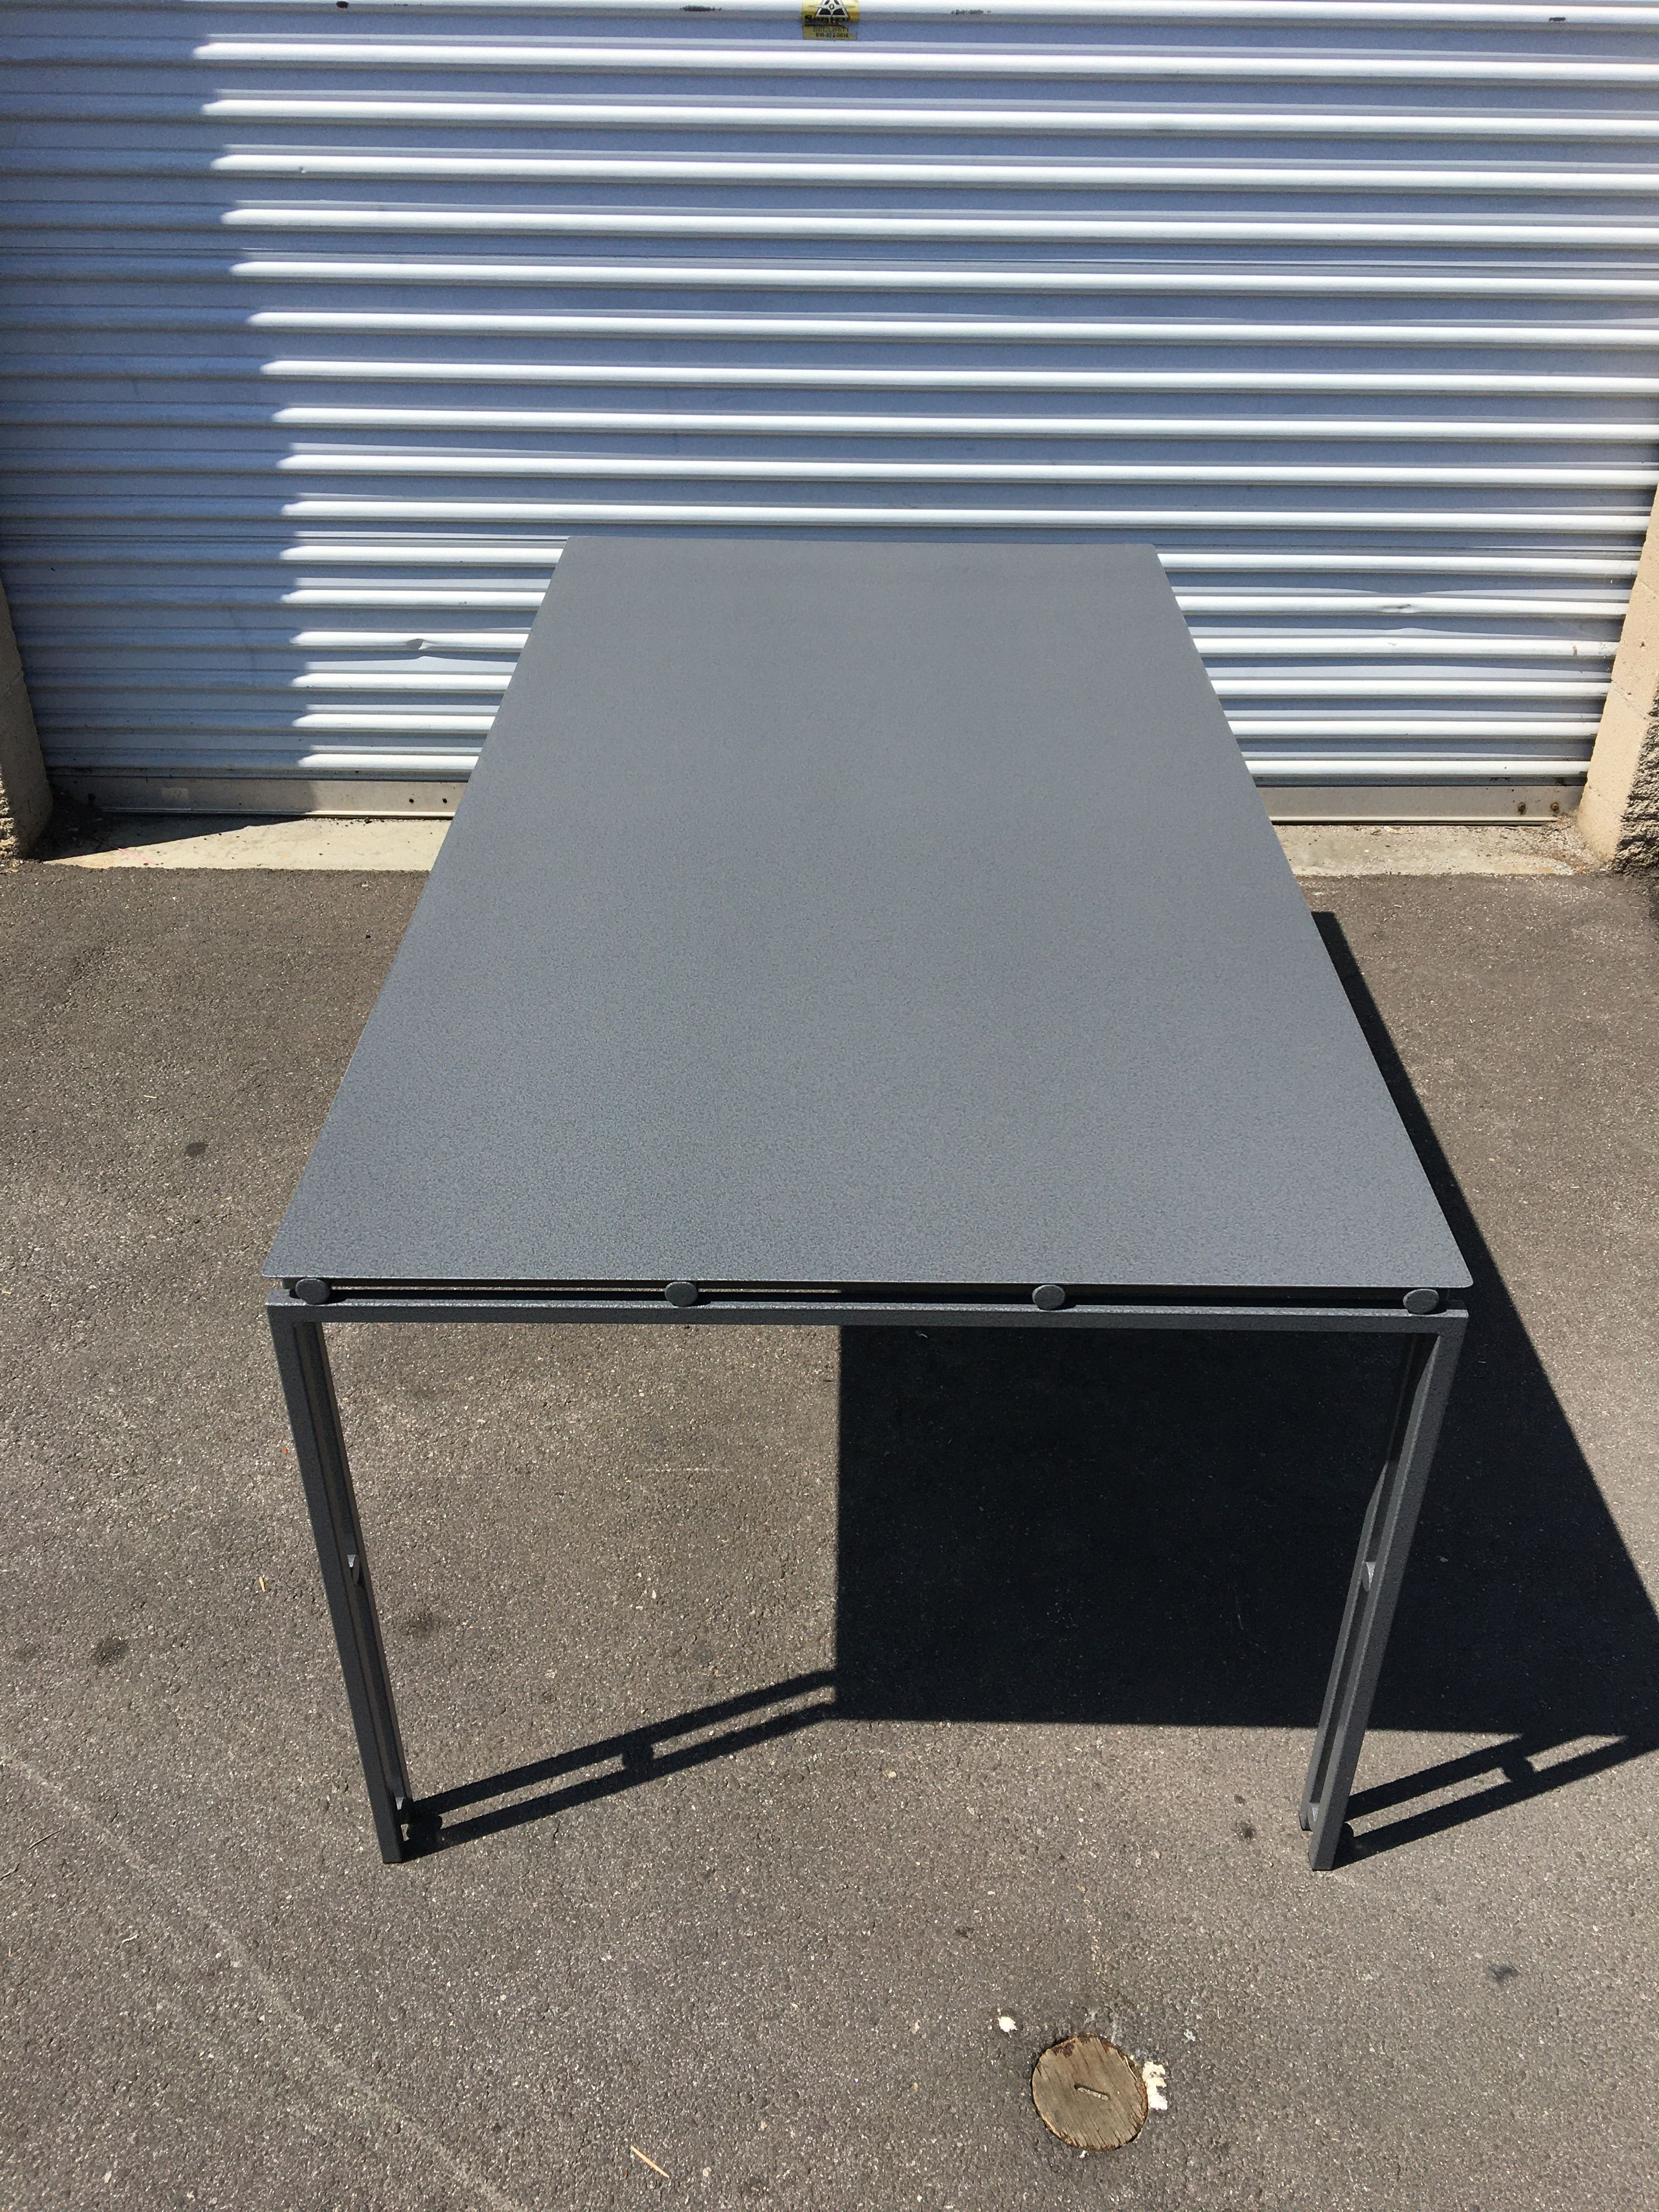 Suspension Metal Dining Table - Mid Size product image 7